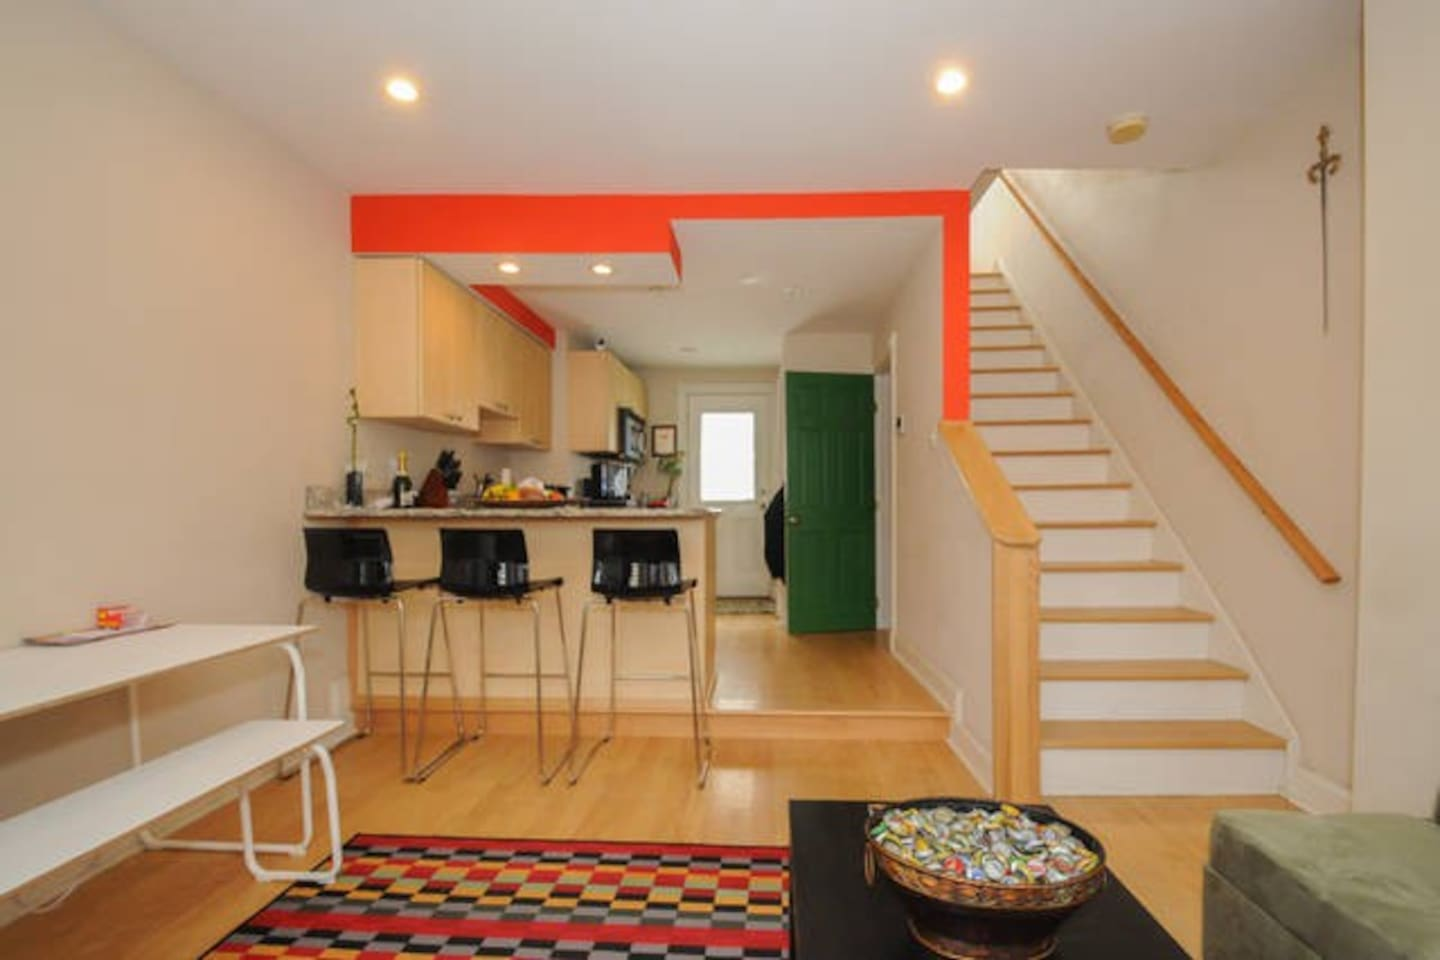 Welcome to your home! It's quirky and theres a lot of colors!